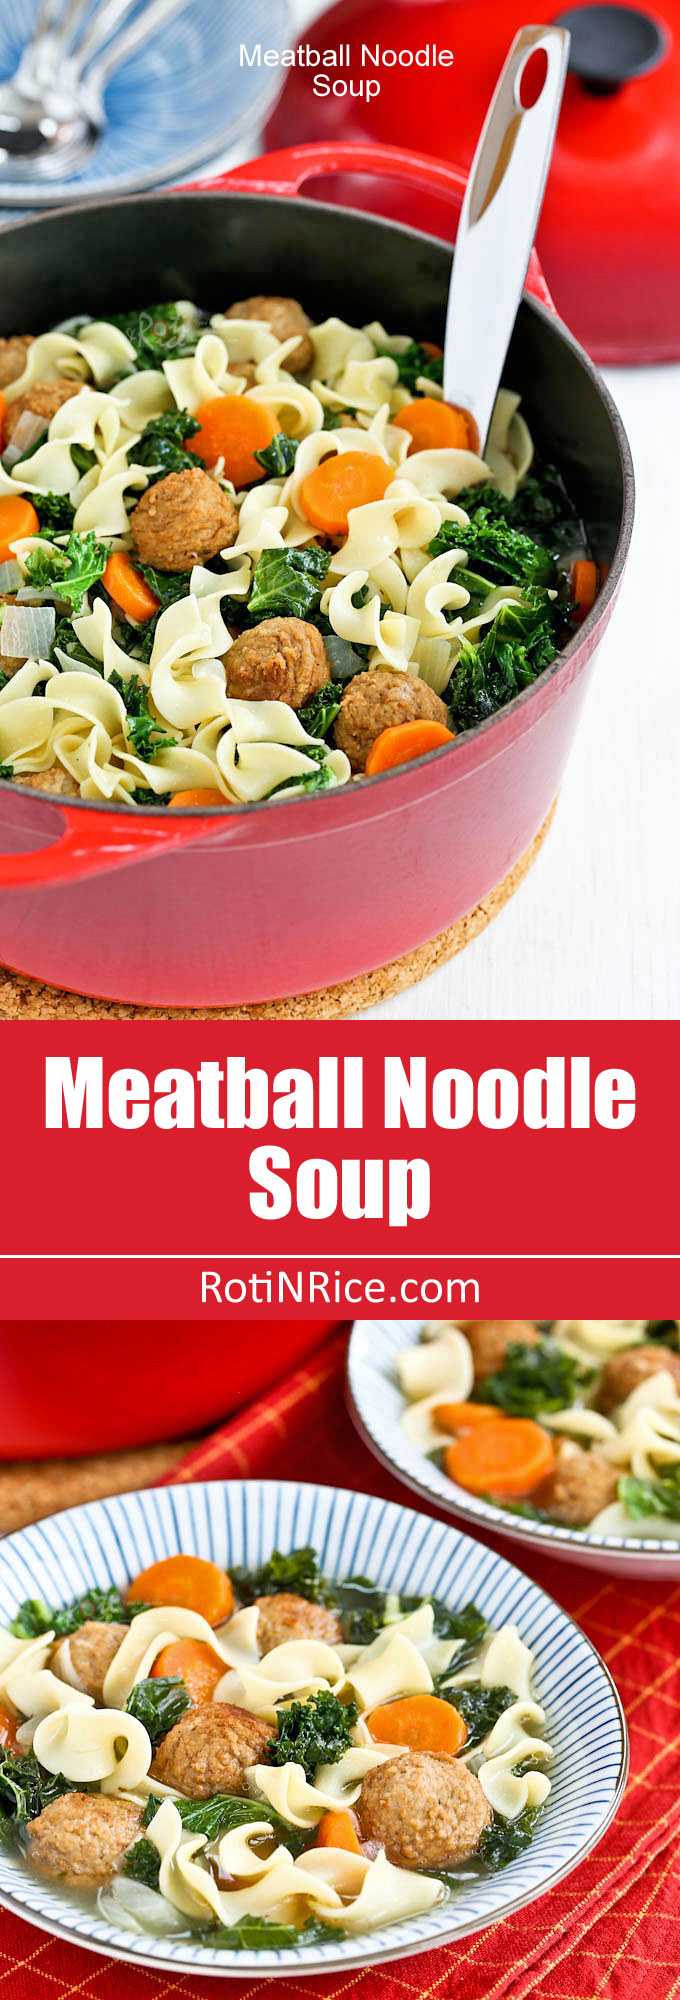 This warm and delicious Meatball Noodle Soup is comfort in a bowl. Very easy to prepare and perfect for cold winter evenings. | RotiNRice.com